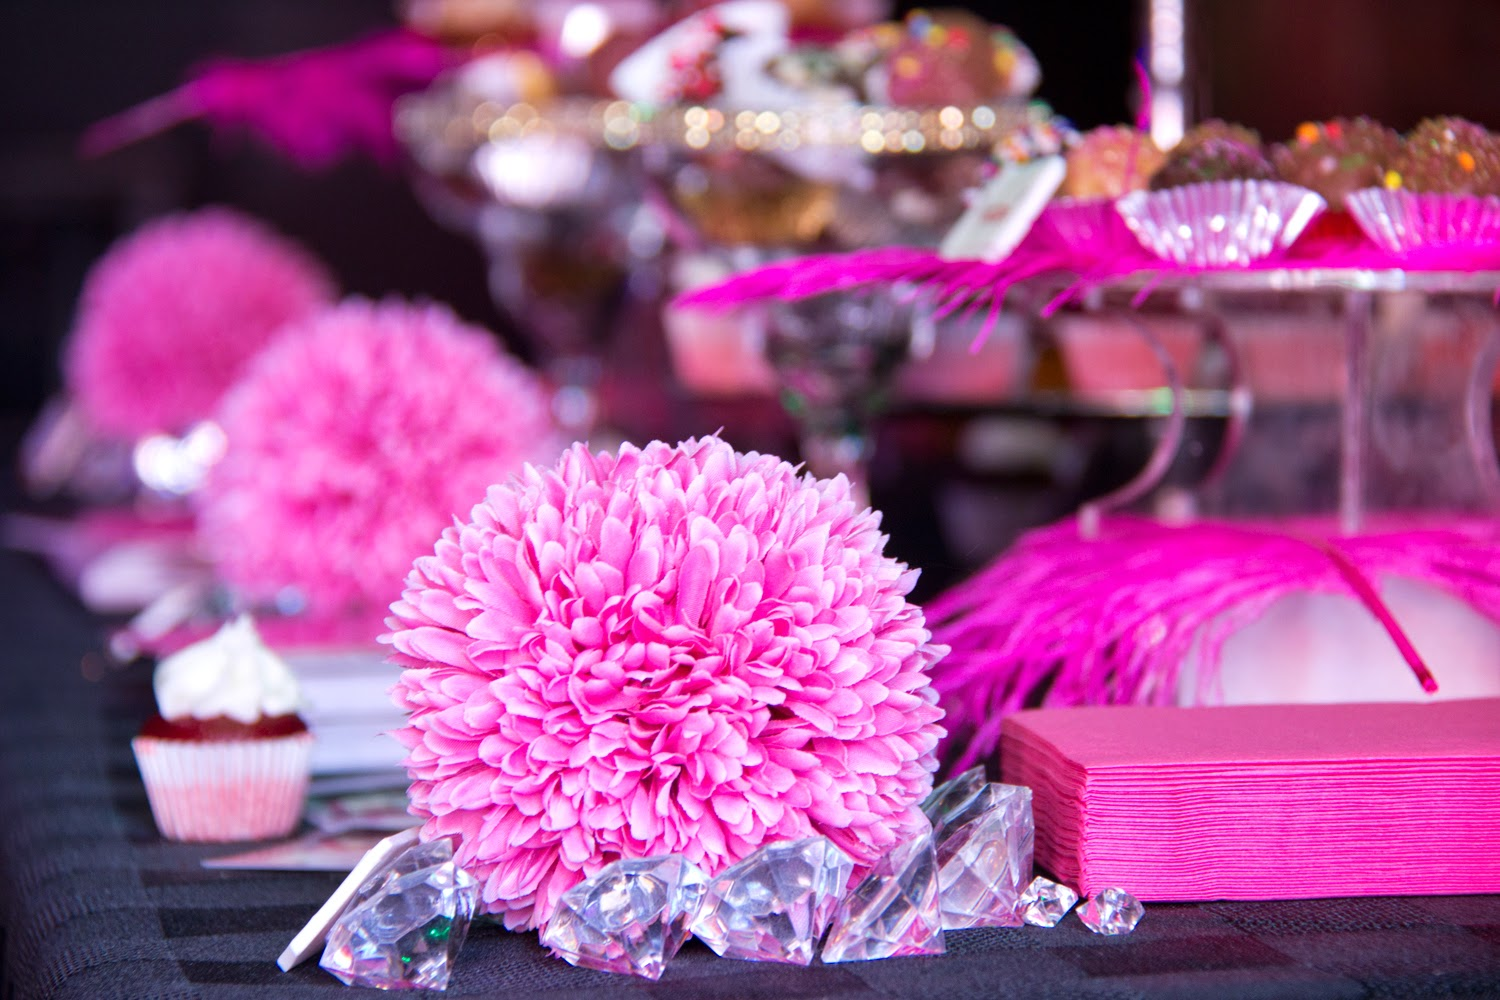 The-fields-party, much-music-video-award-2014, melly-cupcake-pink-flower